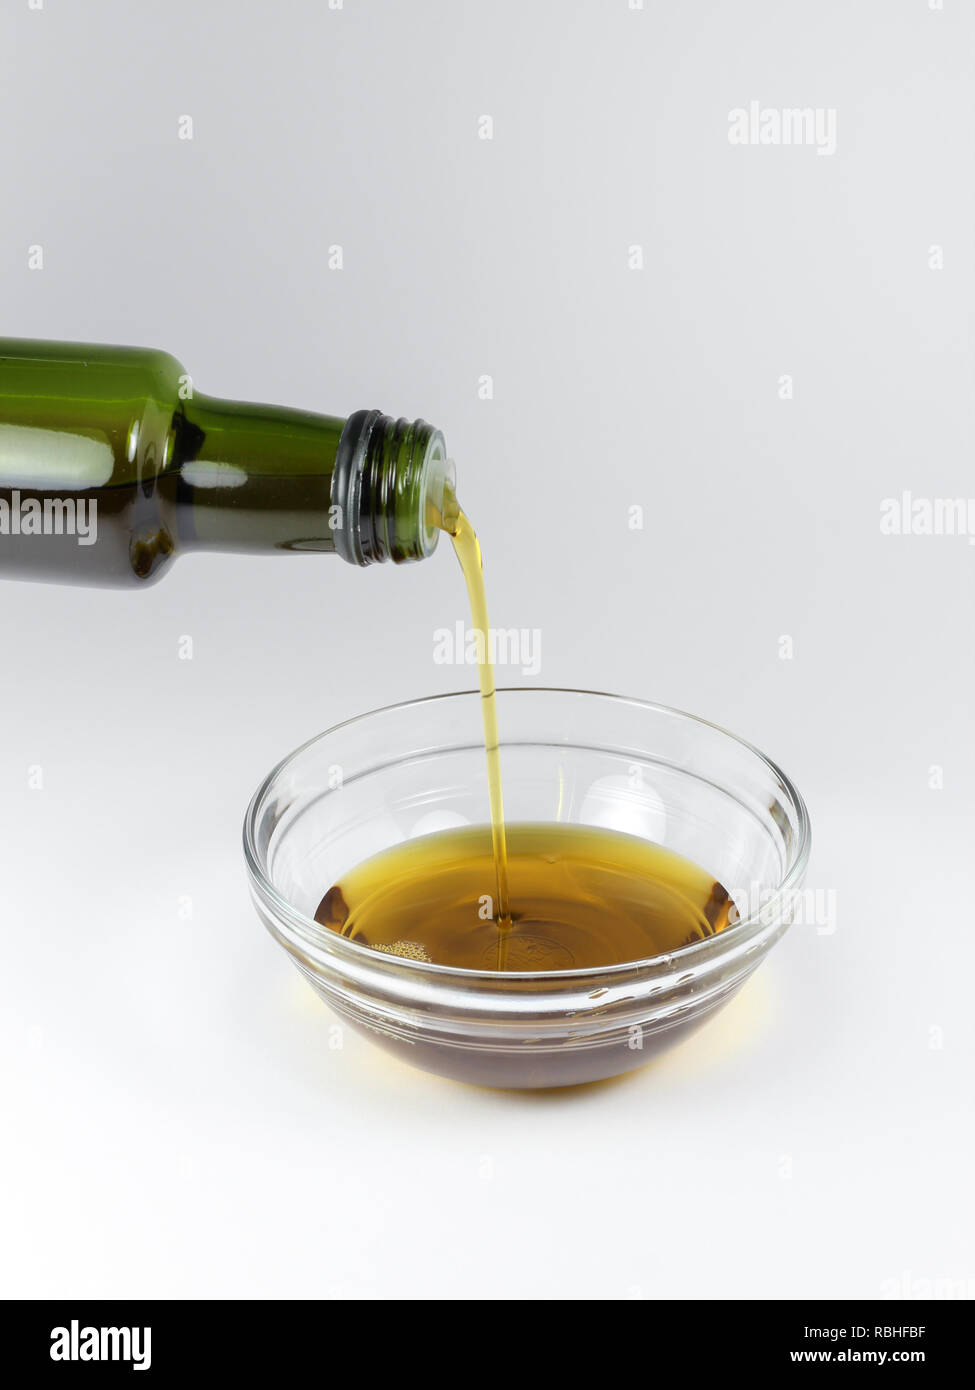 Hemp Seed Oil Stock Photos & Hemp Seed Oil Stock Images - Alamy